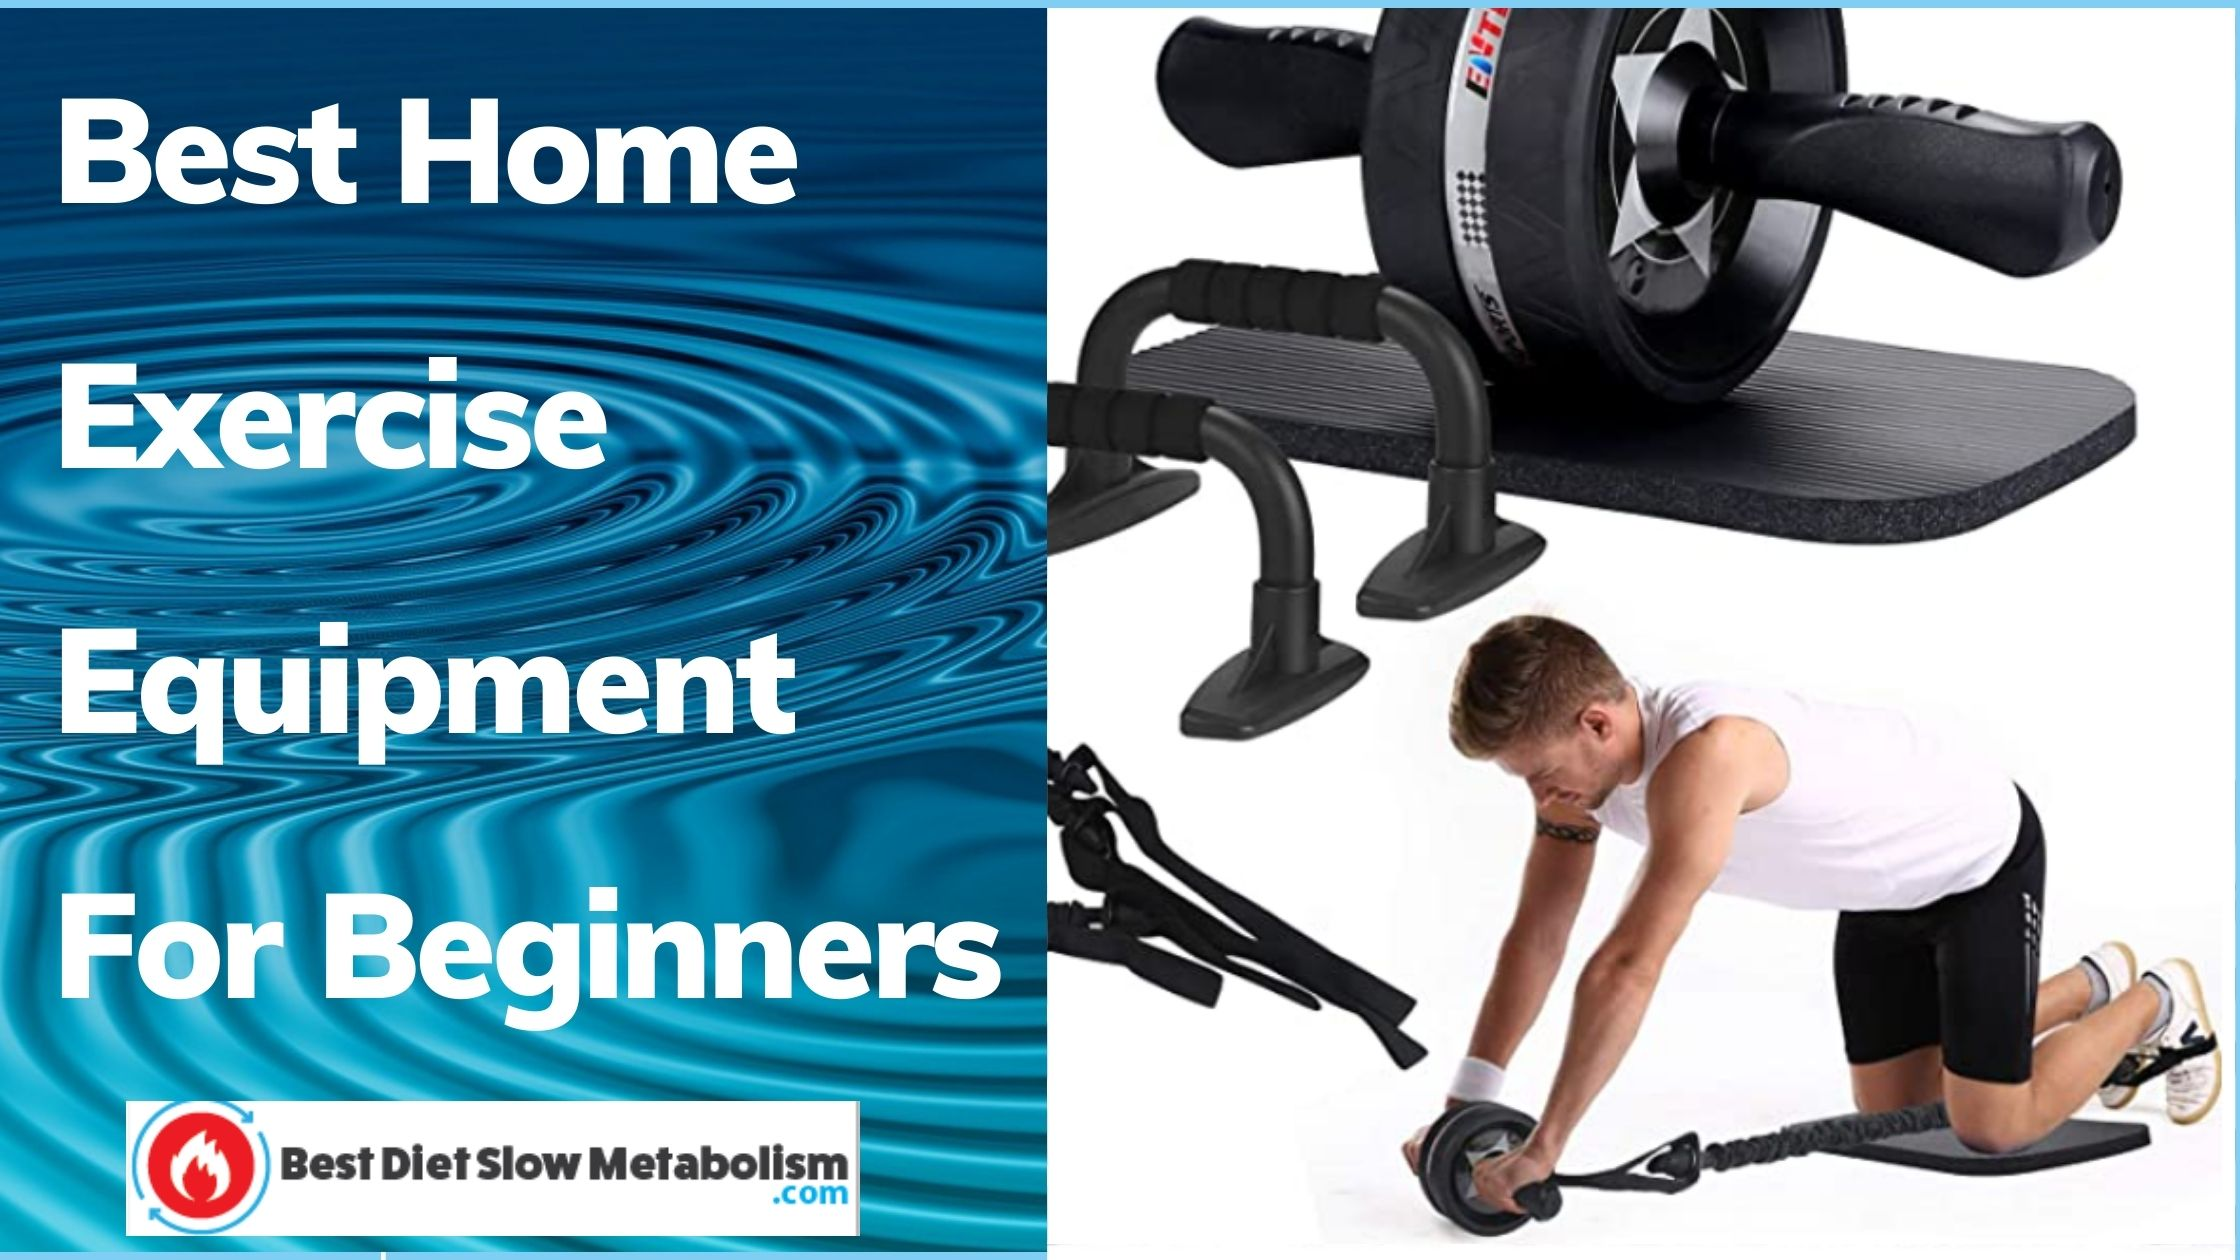 Best Home Exercise Equipment For Beginners - EnterSports Ab Roller Kit